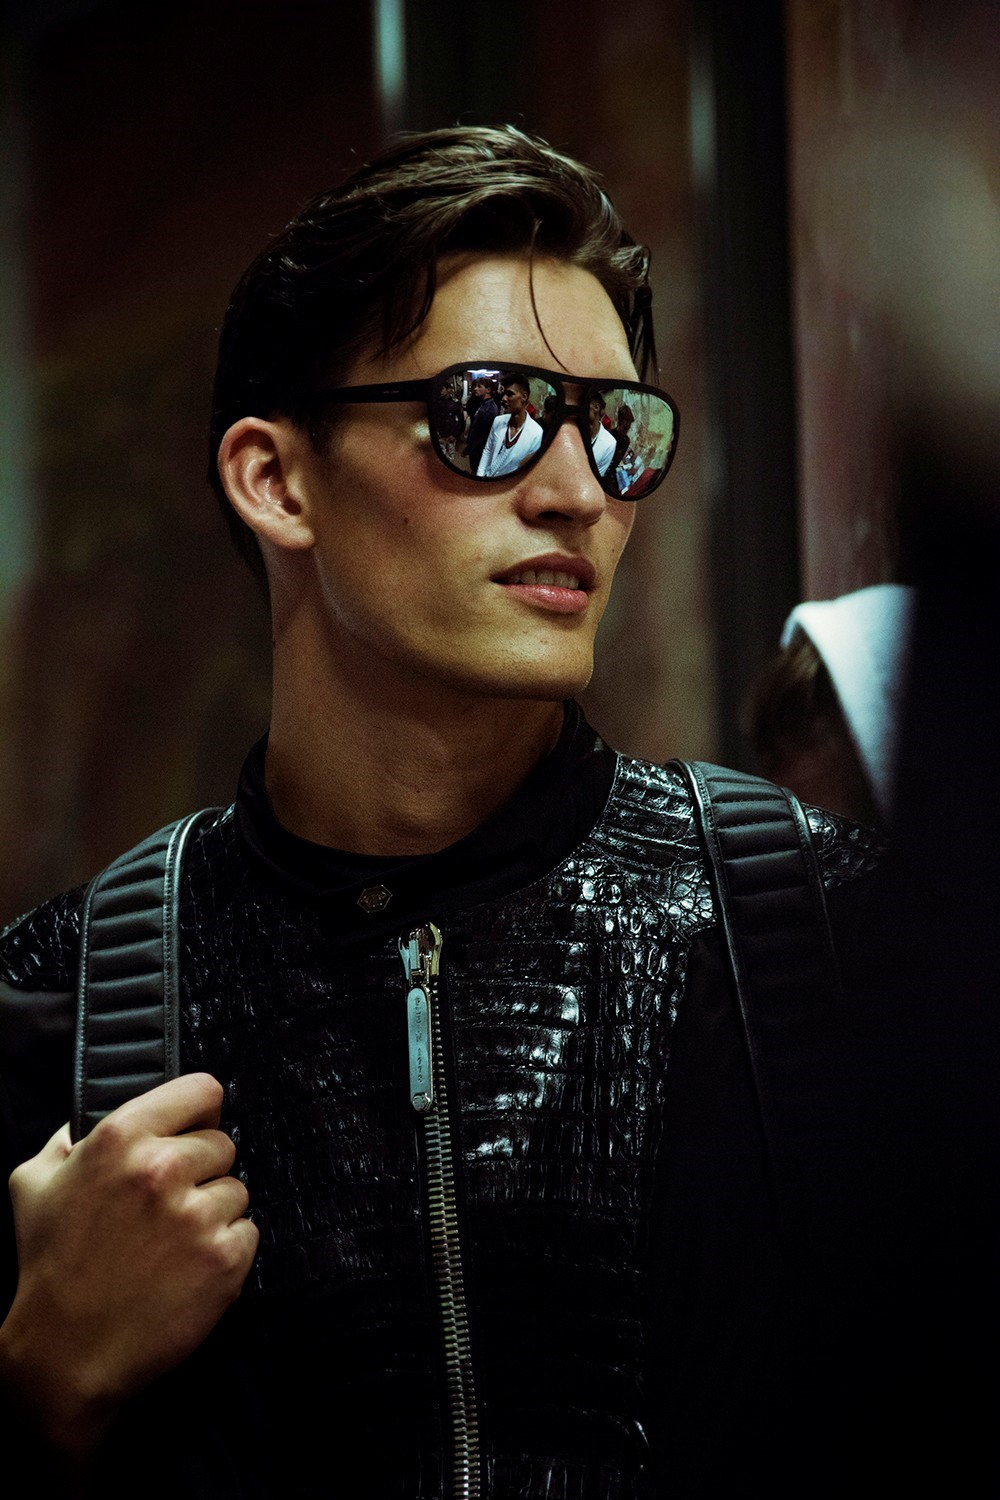 Philipp Plein SS15 Mens collections, Dazed backstage